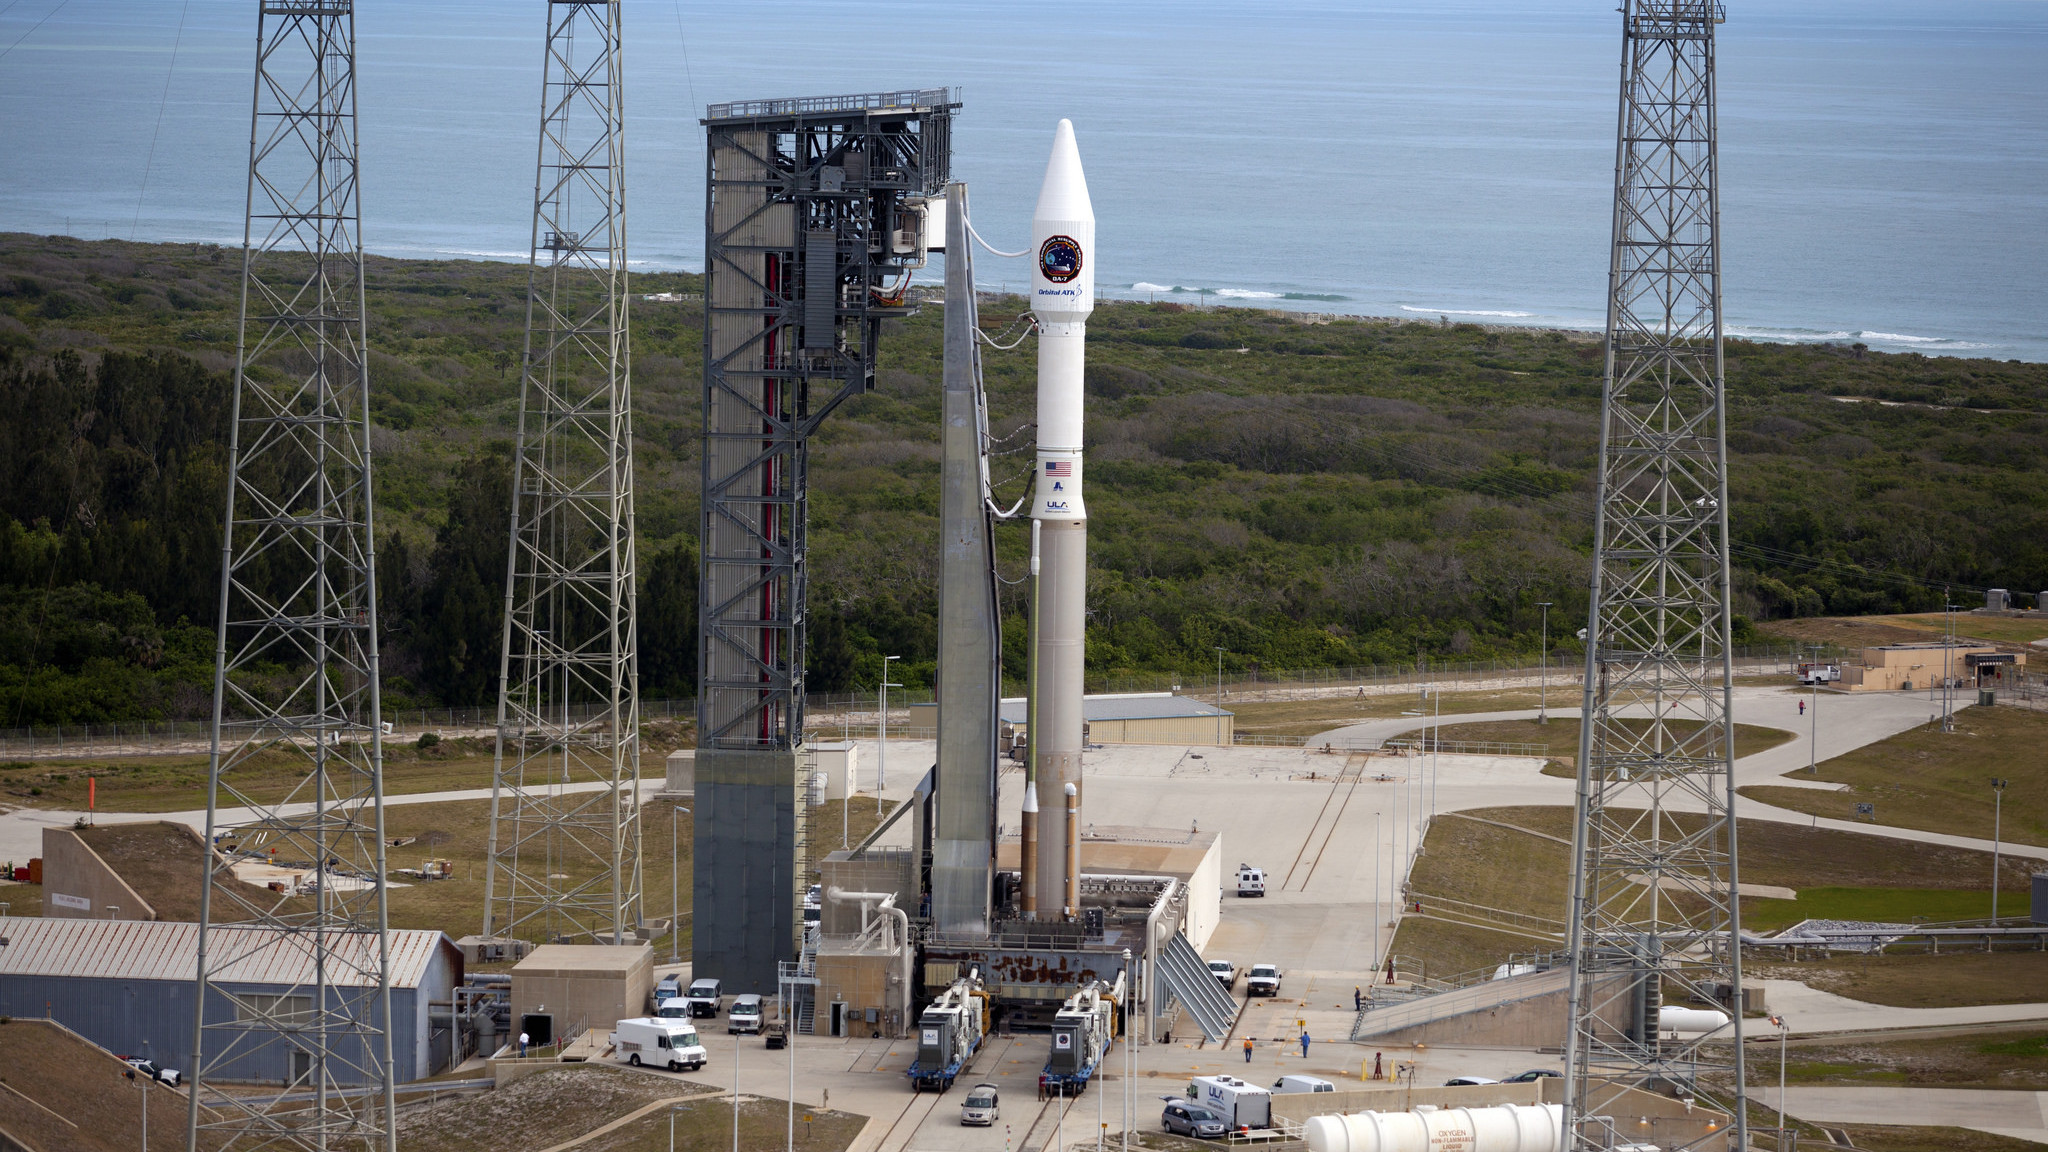 The United Launch Alliance Atlas V rocket, with the Orbital ATK Cygnus pressurized cargo module, stands ready for launch on the pad at Space Launch Complex 41 at Cape Canaveral Air Force Station in Florida.